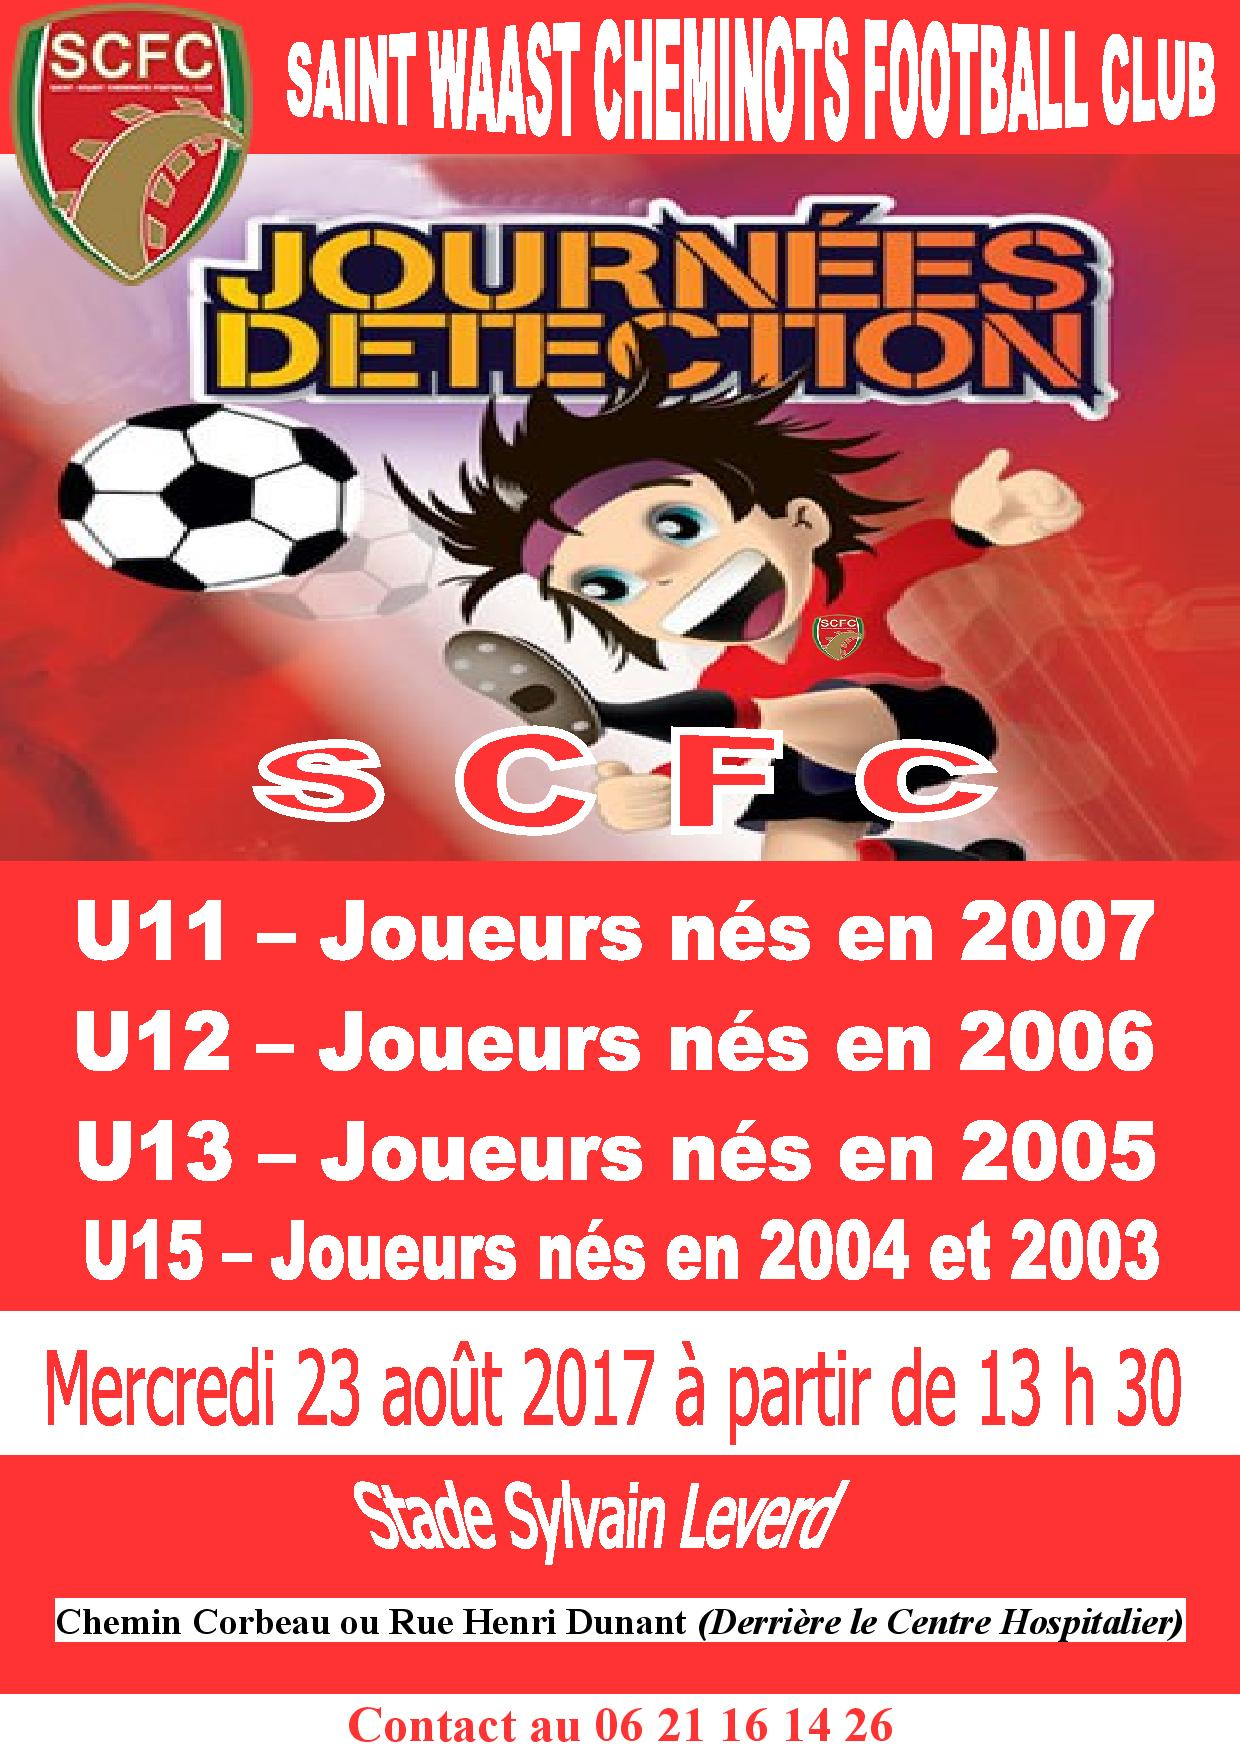 AFFICHE DETECTION - Nouvelle version - Copie-page-001.jpg